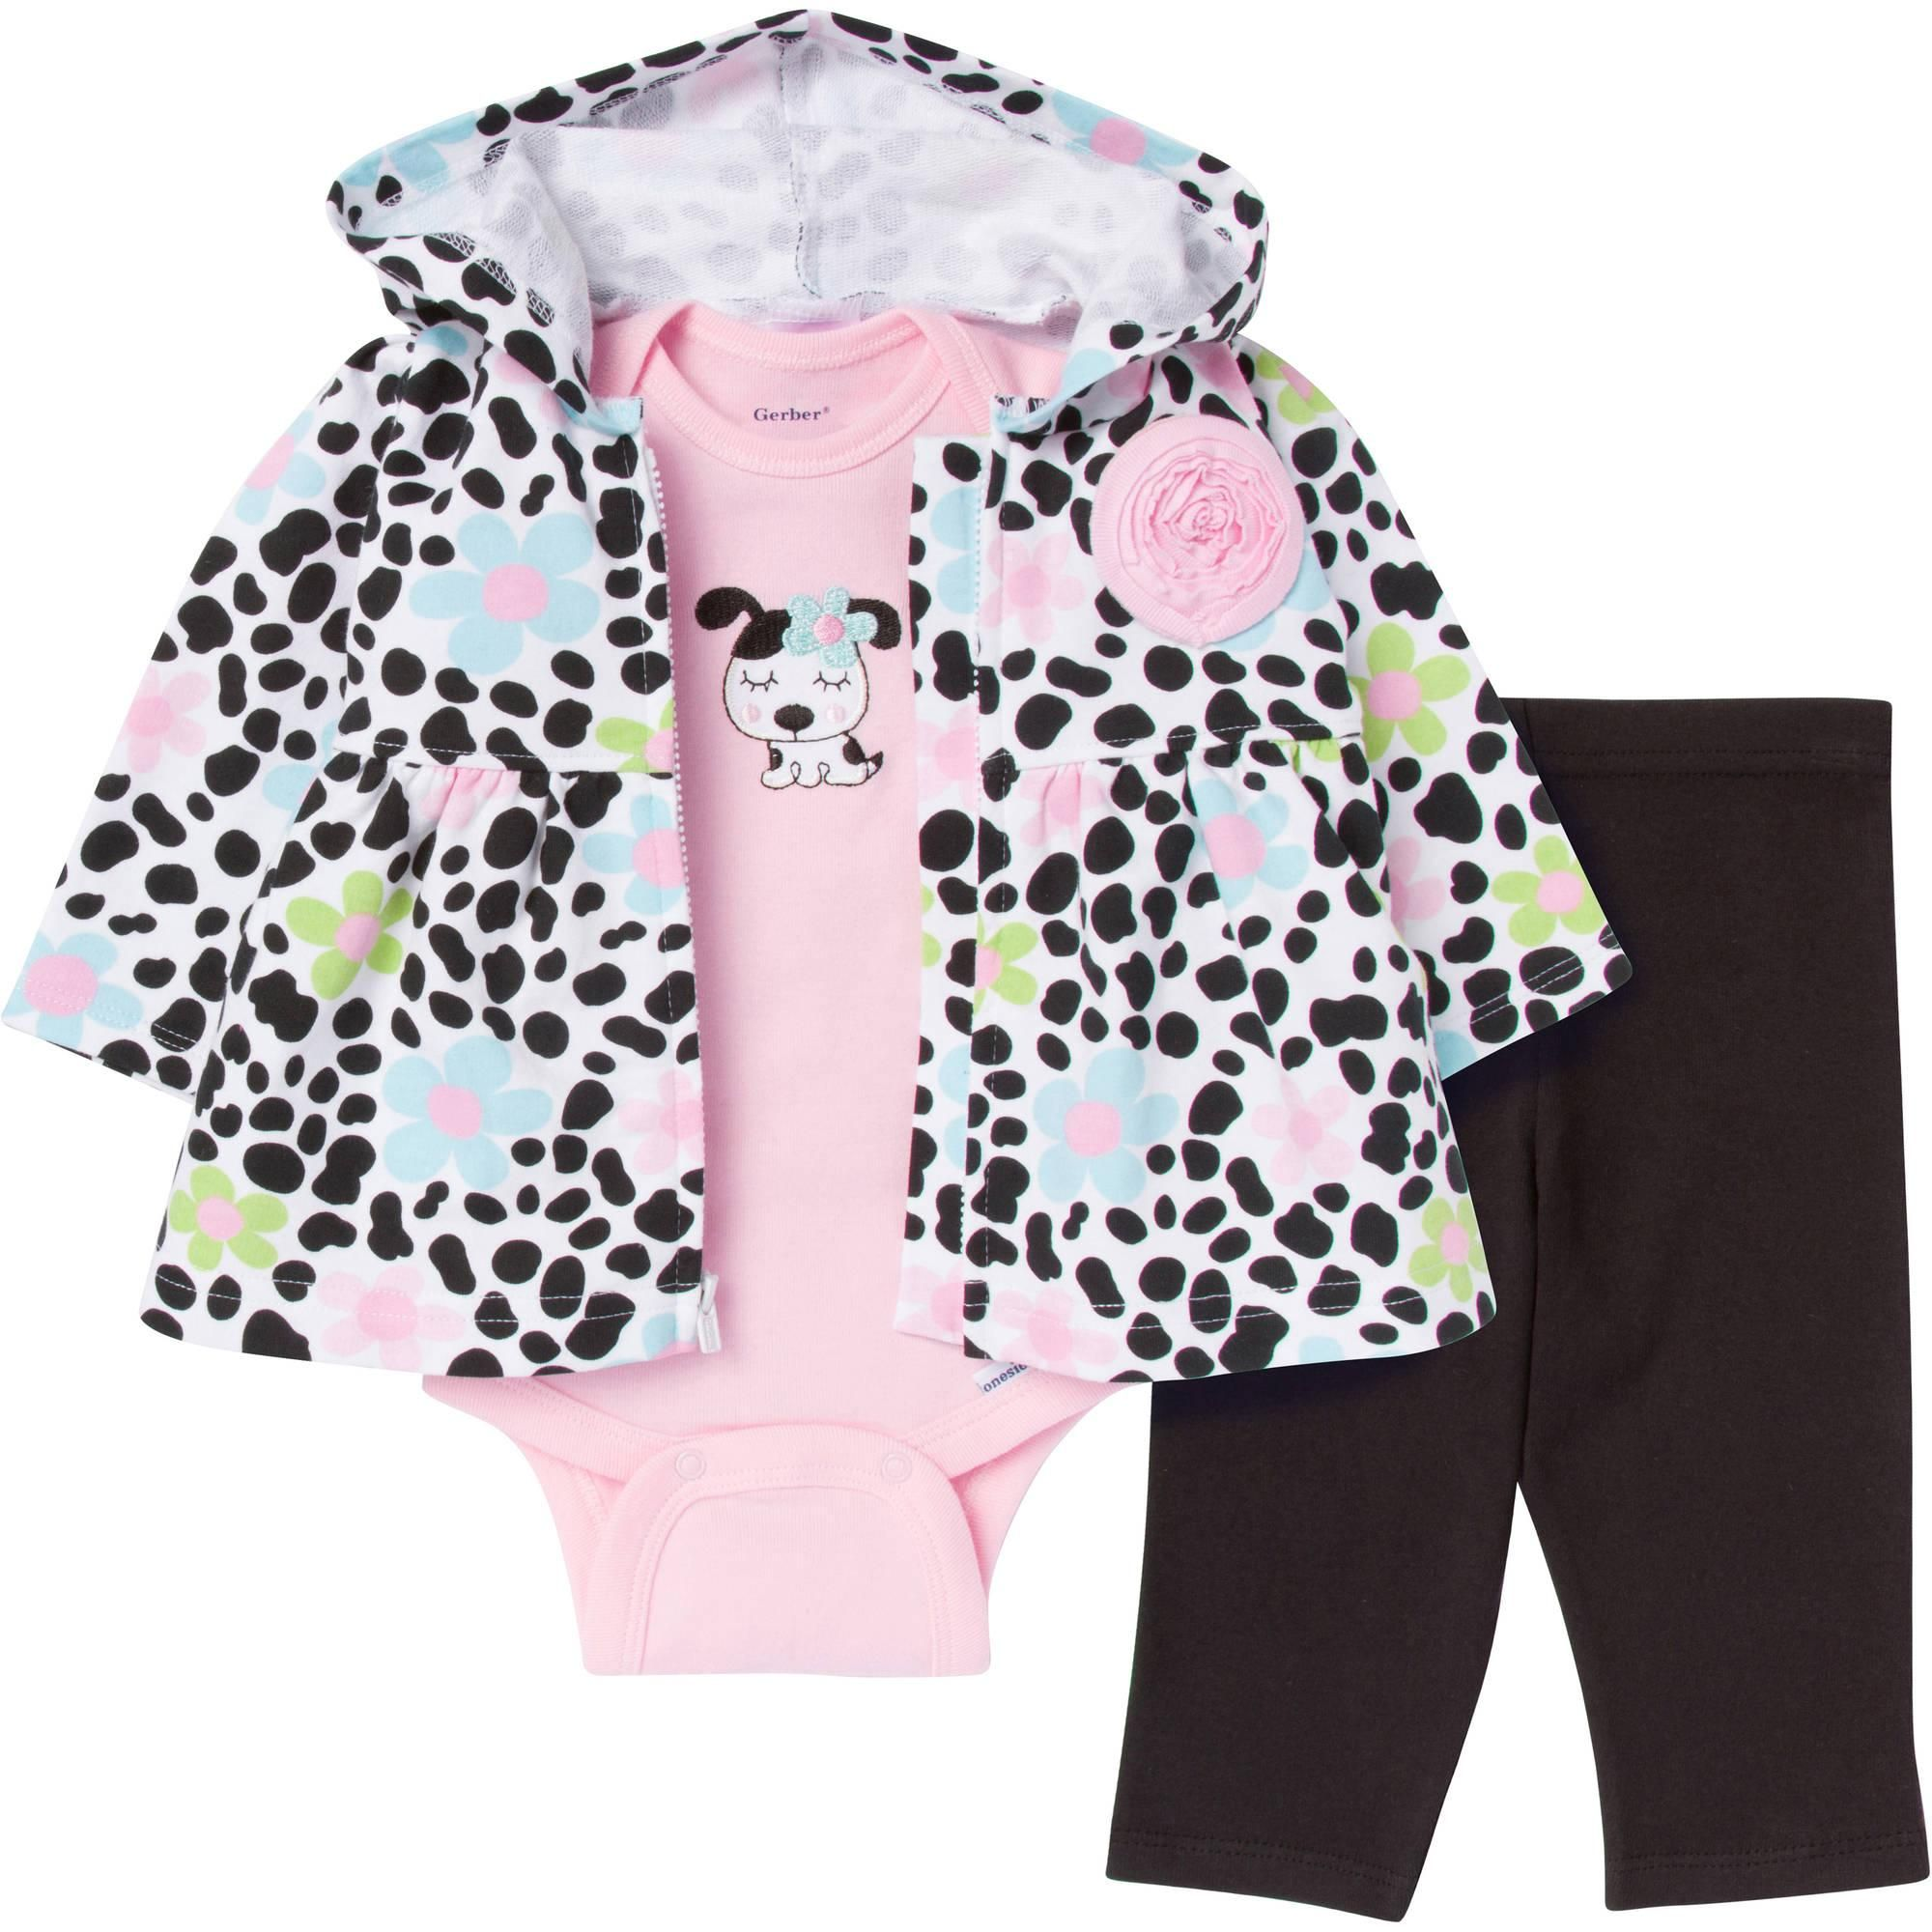 Walmart Baby Girl Clothes Cool Baby Girl Clothes  Baby & Toddler  Walmart  Baby Stuff Inspiration